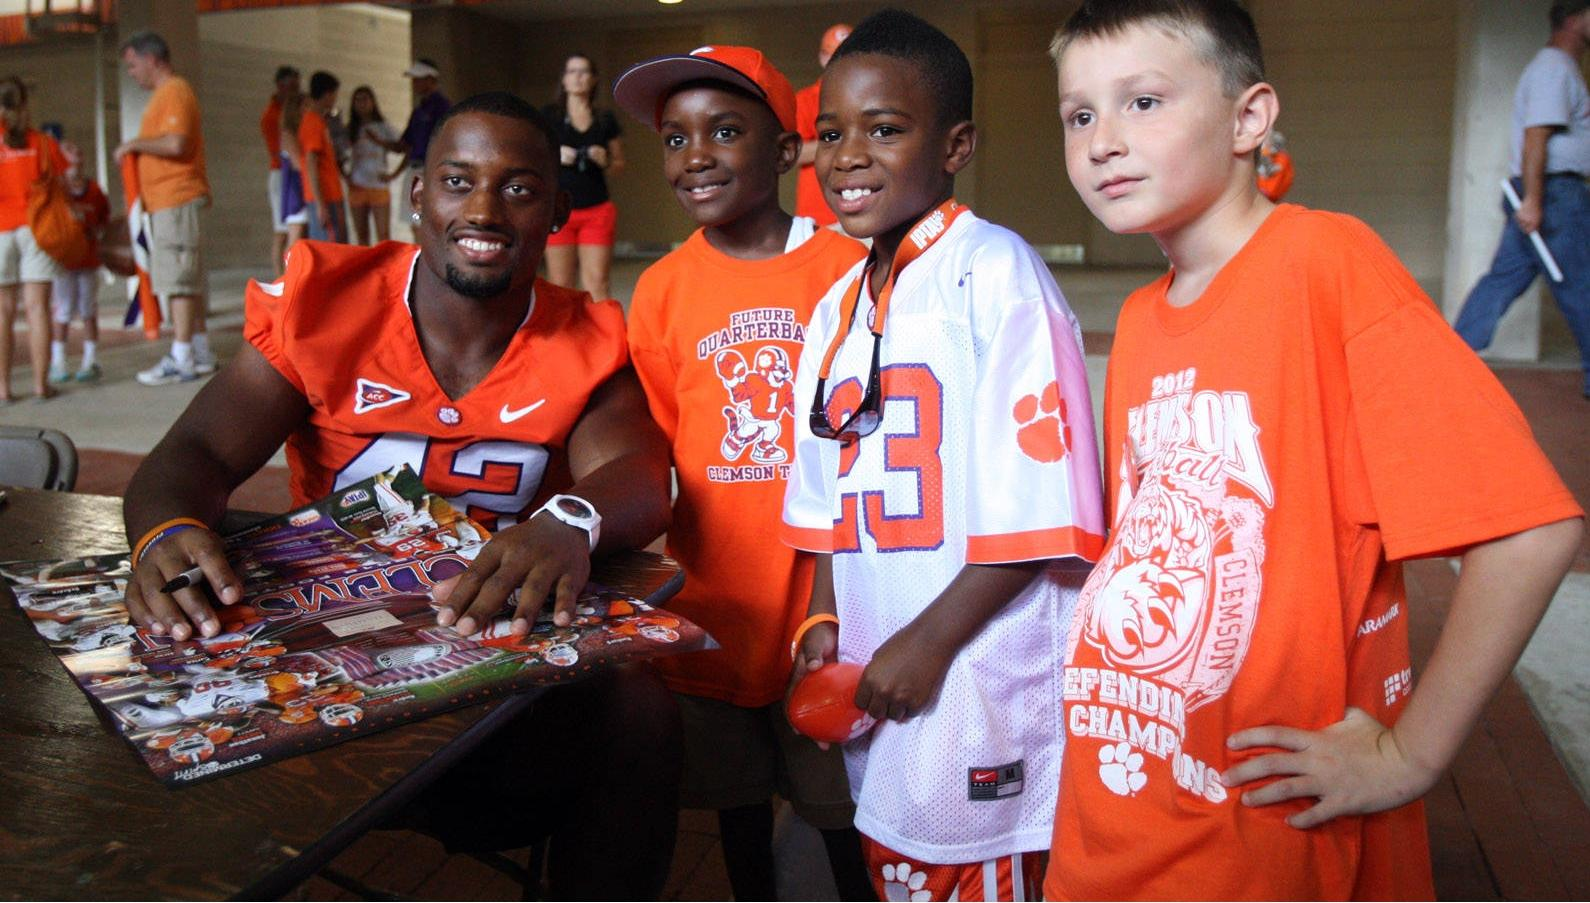 ClemsonTigers.com Exclusive: Fans Did Not Mind Waiting to Meet their Favorite Tigers